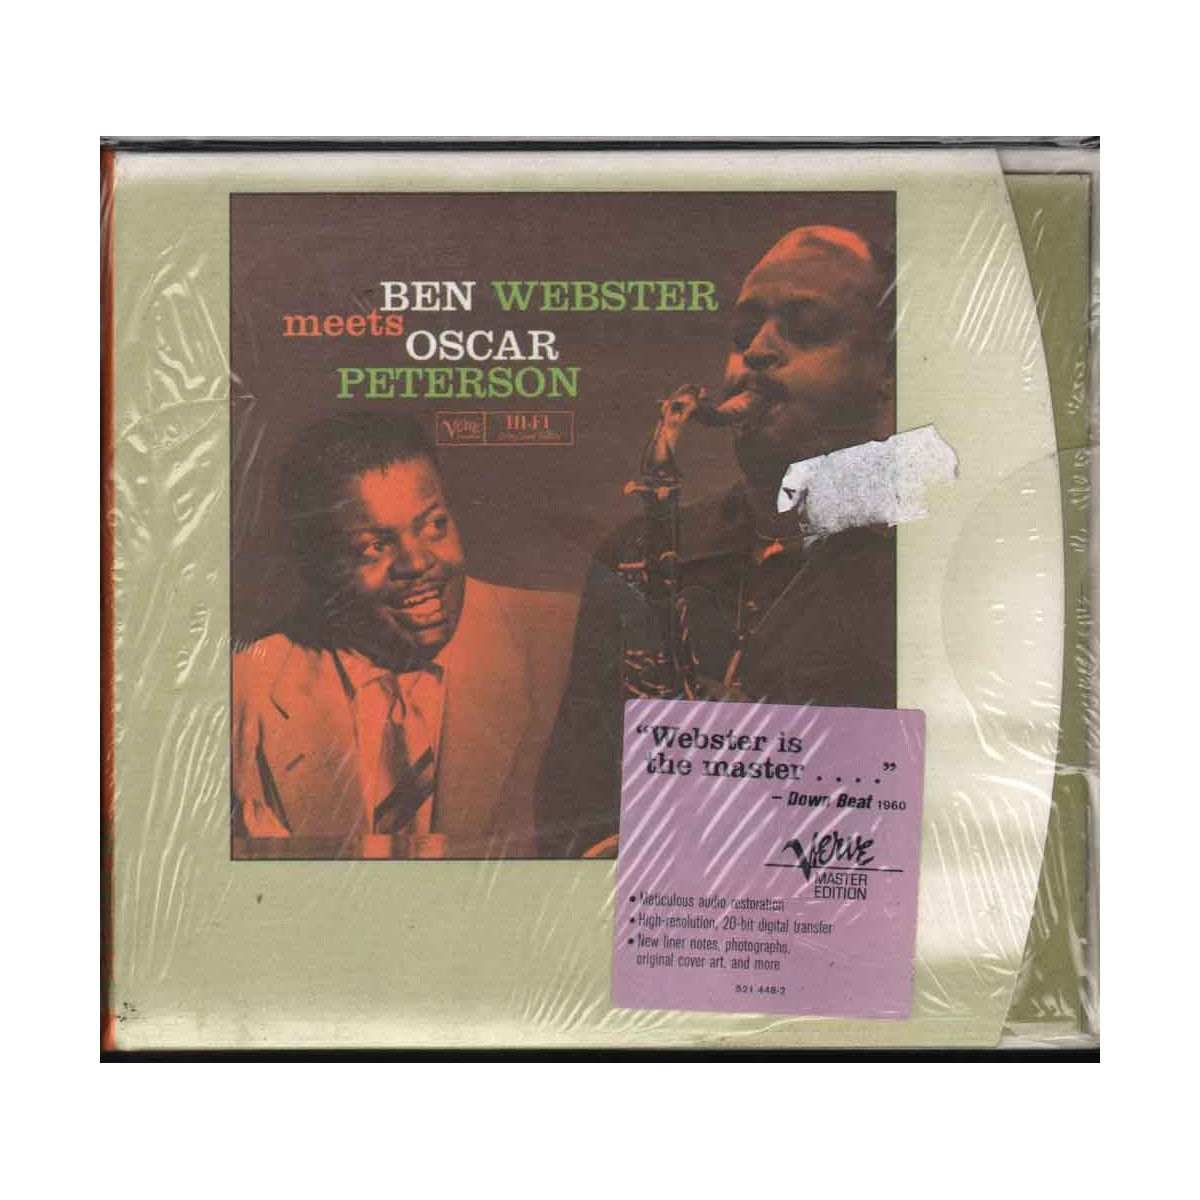 Terry O Neill   William Ellis also Mpid MP D7FD7M18161778 also Showthread besides Wedding Portraits In Unforgettable Landscapes Around The World furthermore Wedding Portraits In Unforgettable Landscapes Around The World. on oscar peterson compilation